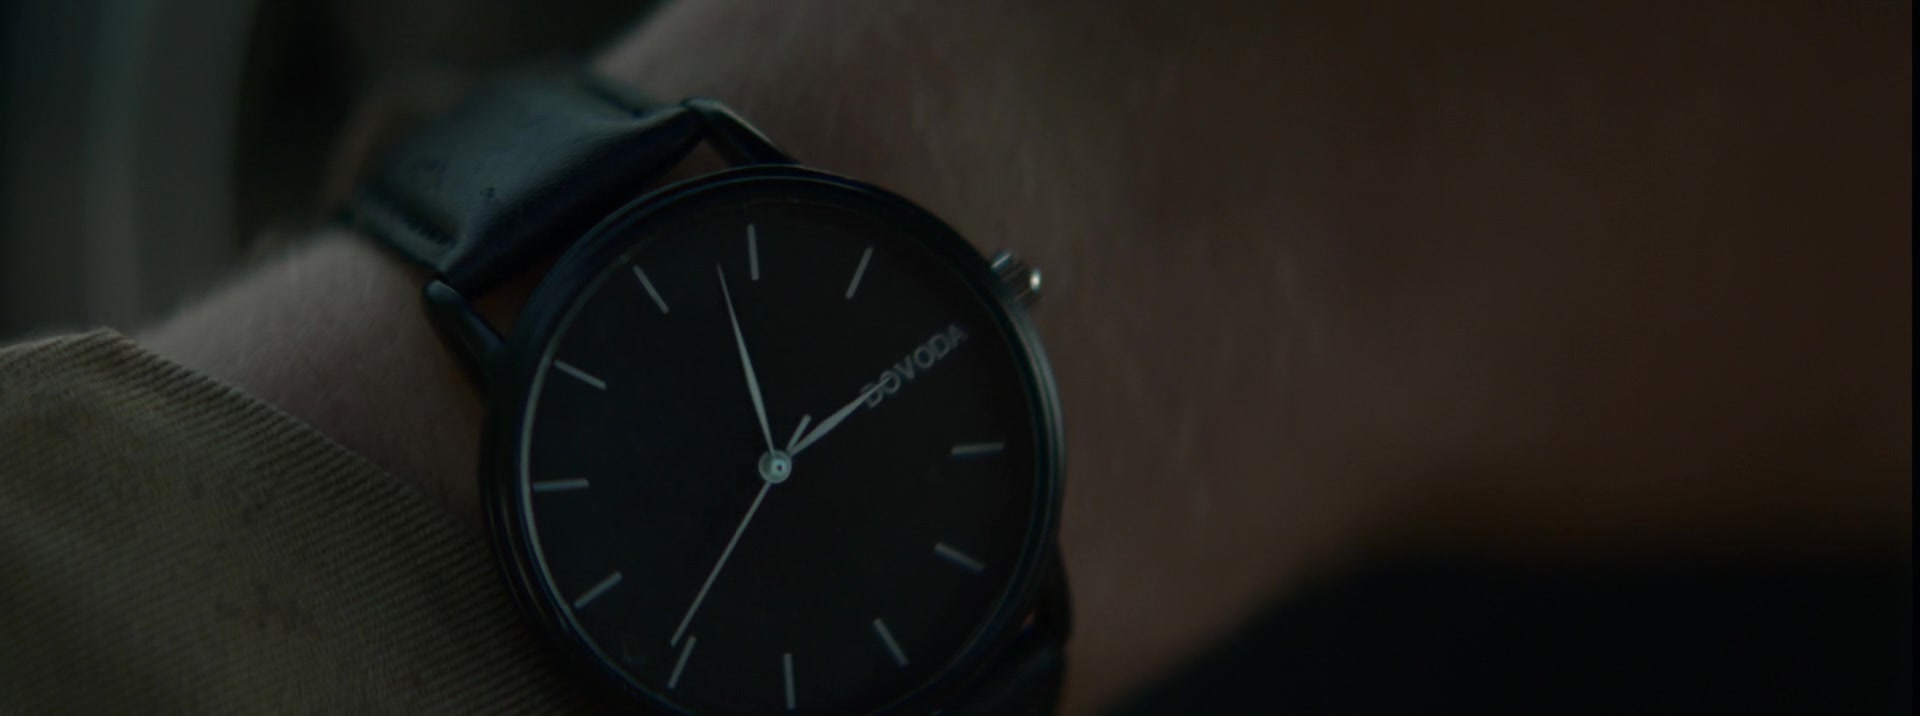 Dovoda men 39 s black wrist watch worn by beau knapp in crypto 2019 movie for Dovoda watches